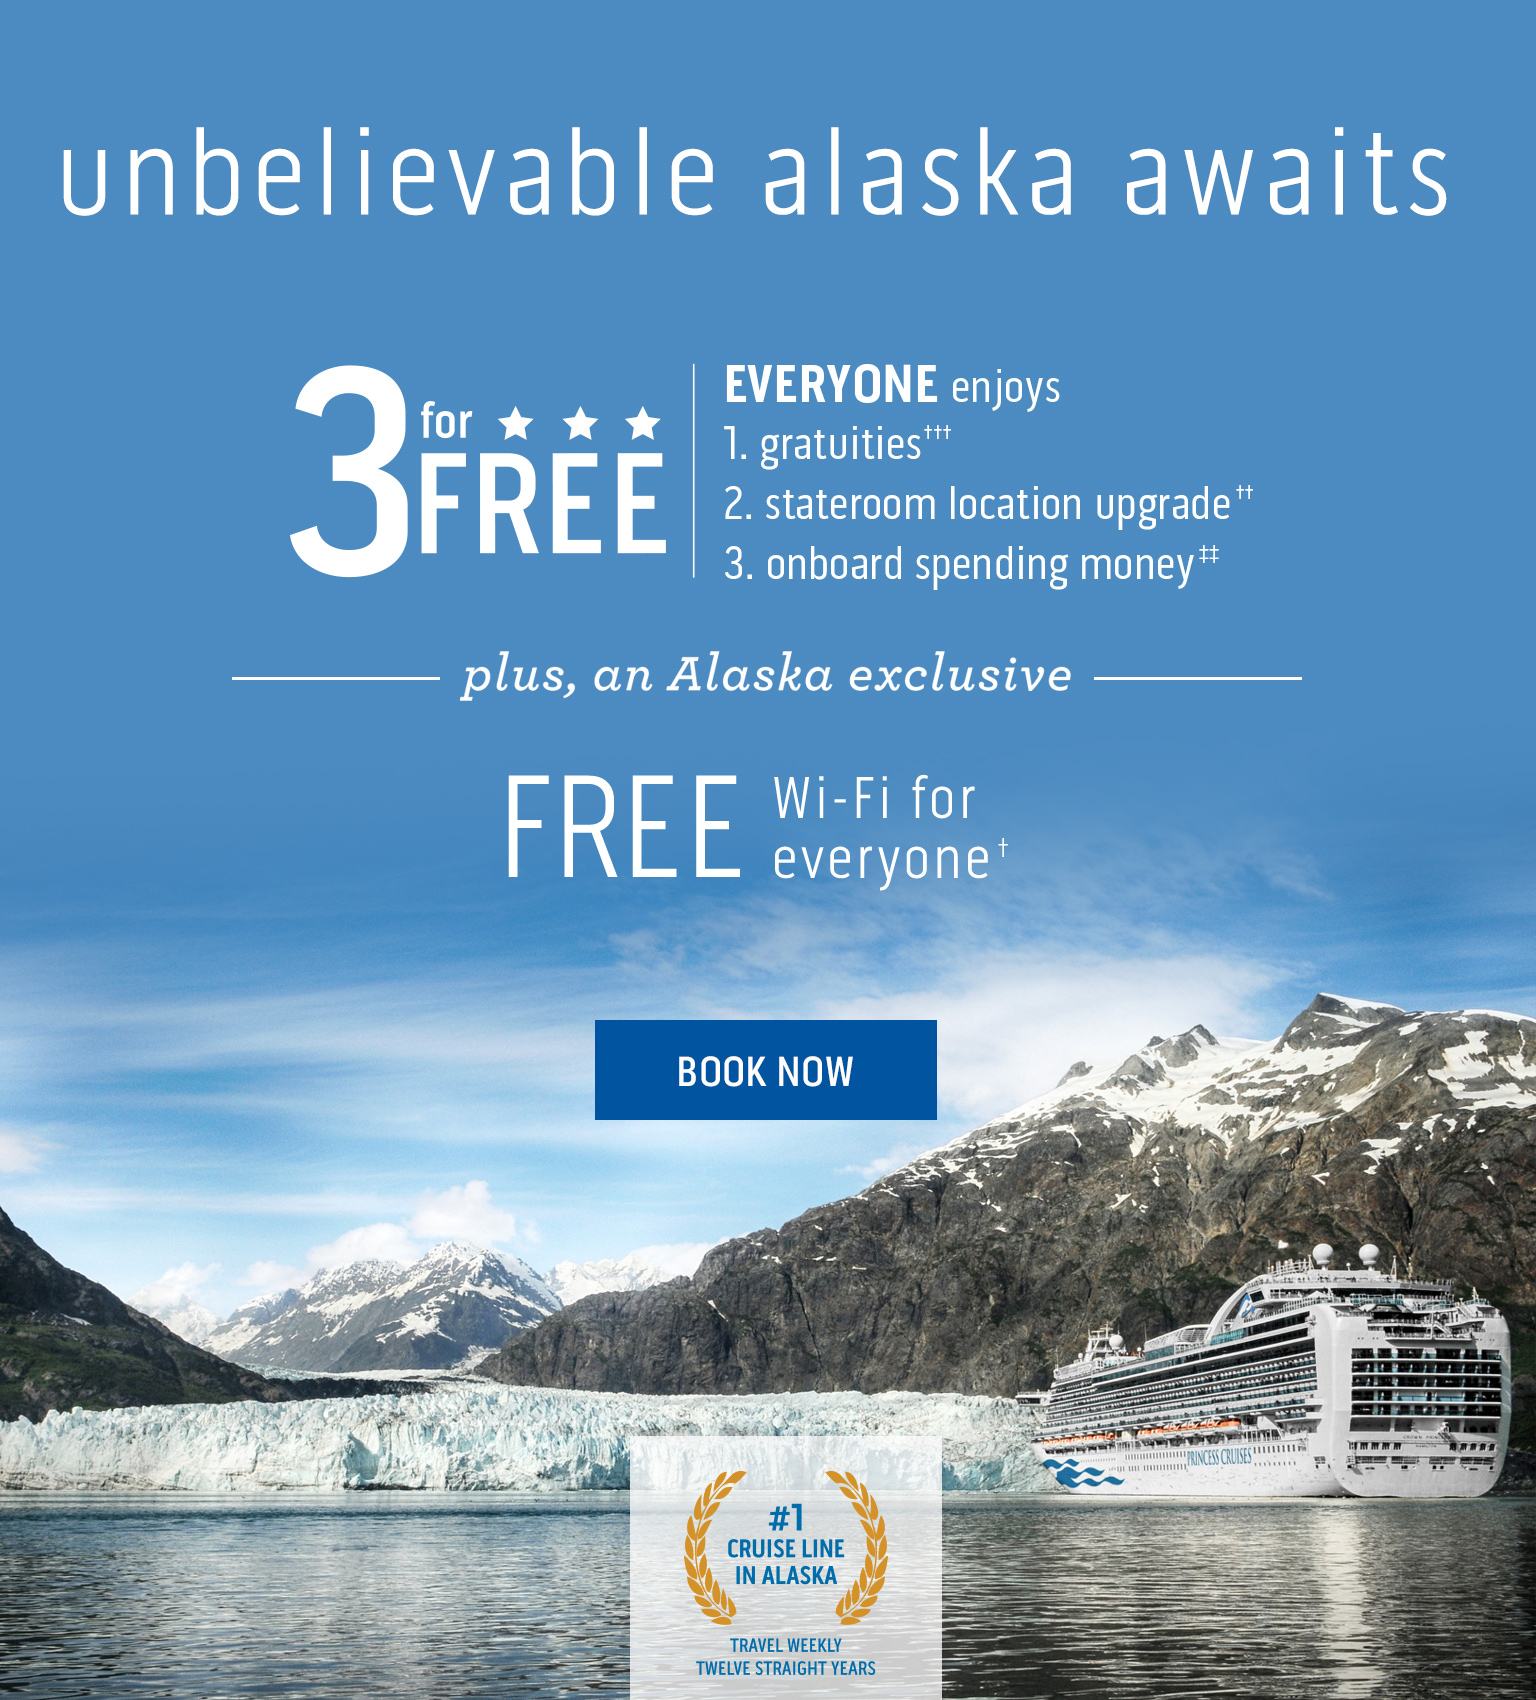 Enjoy 3 for FREE PLUS an exclusive Alaska offer from Princess!